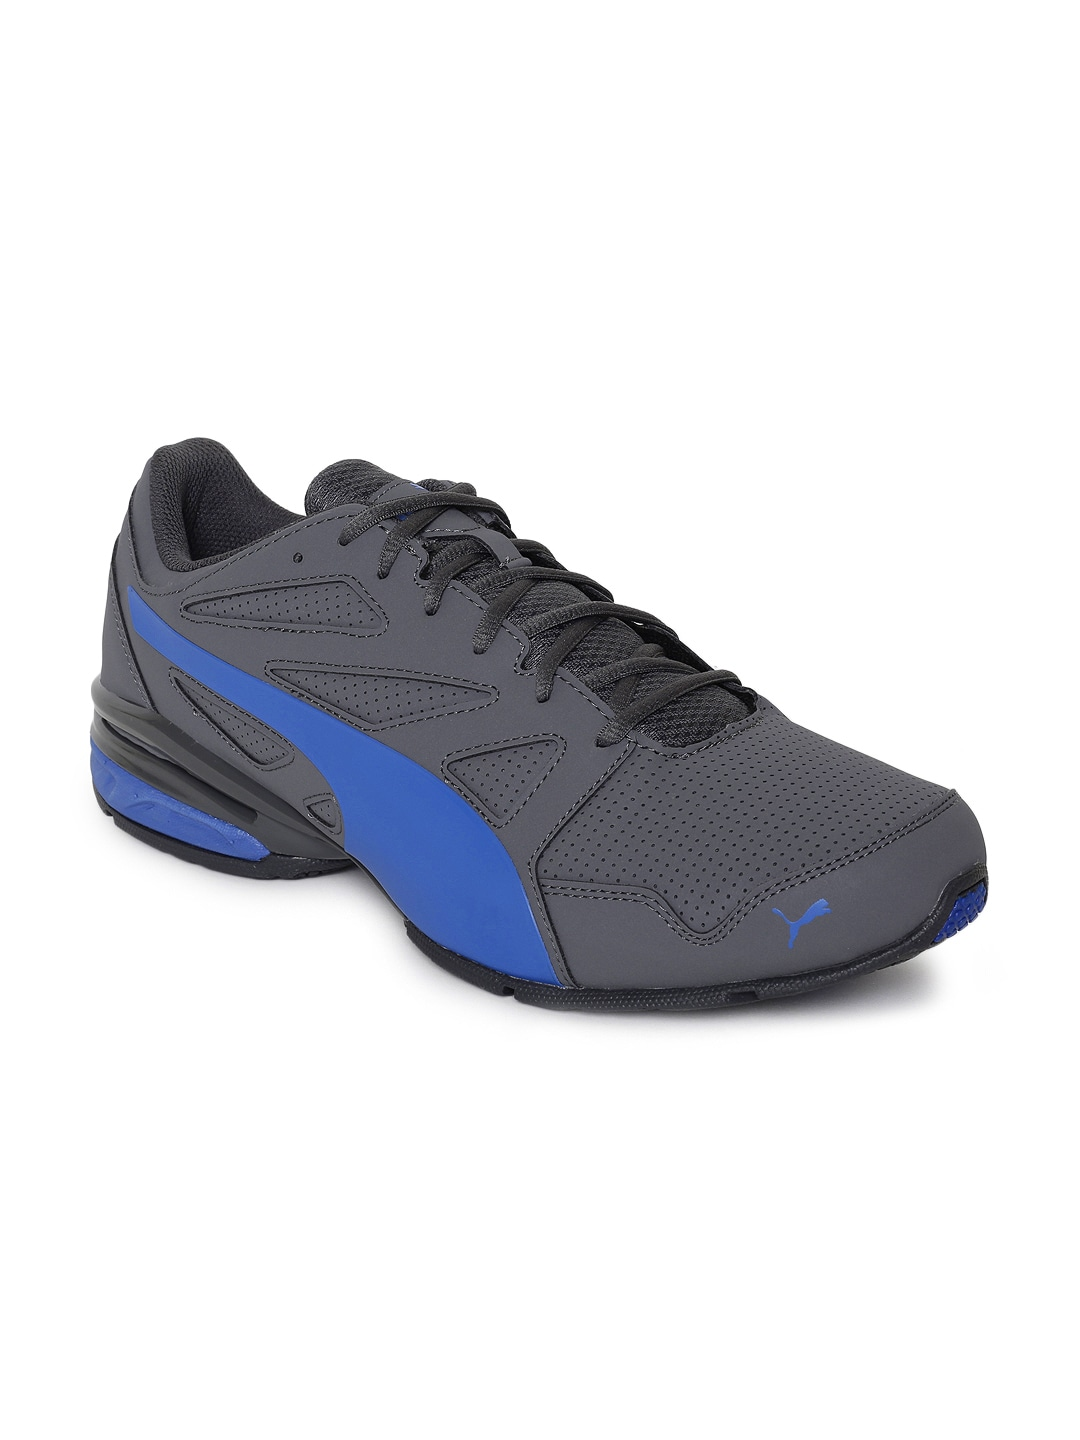 c730a3f5e5d Puma Tazon - Buy Puma Tazon online in India